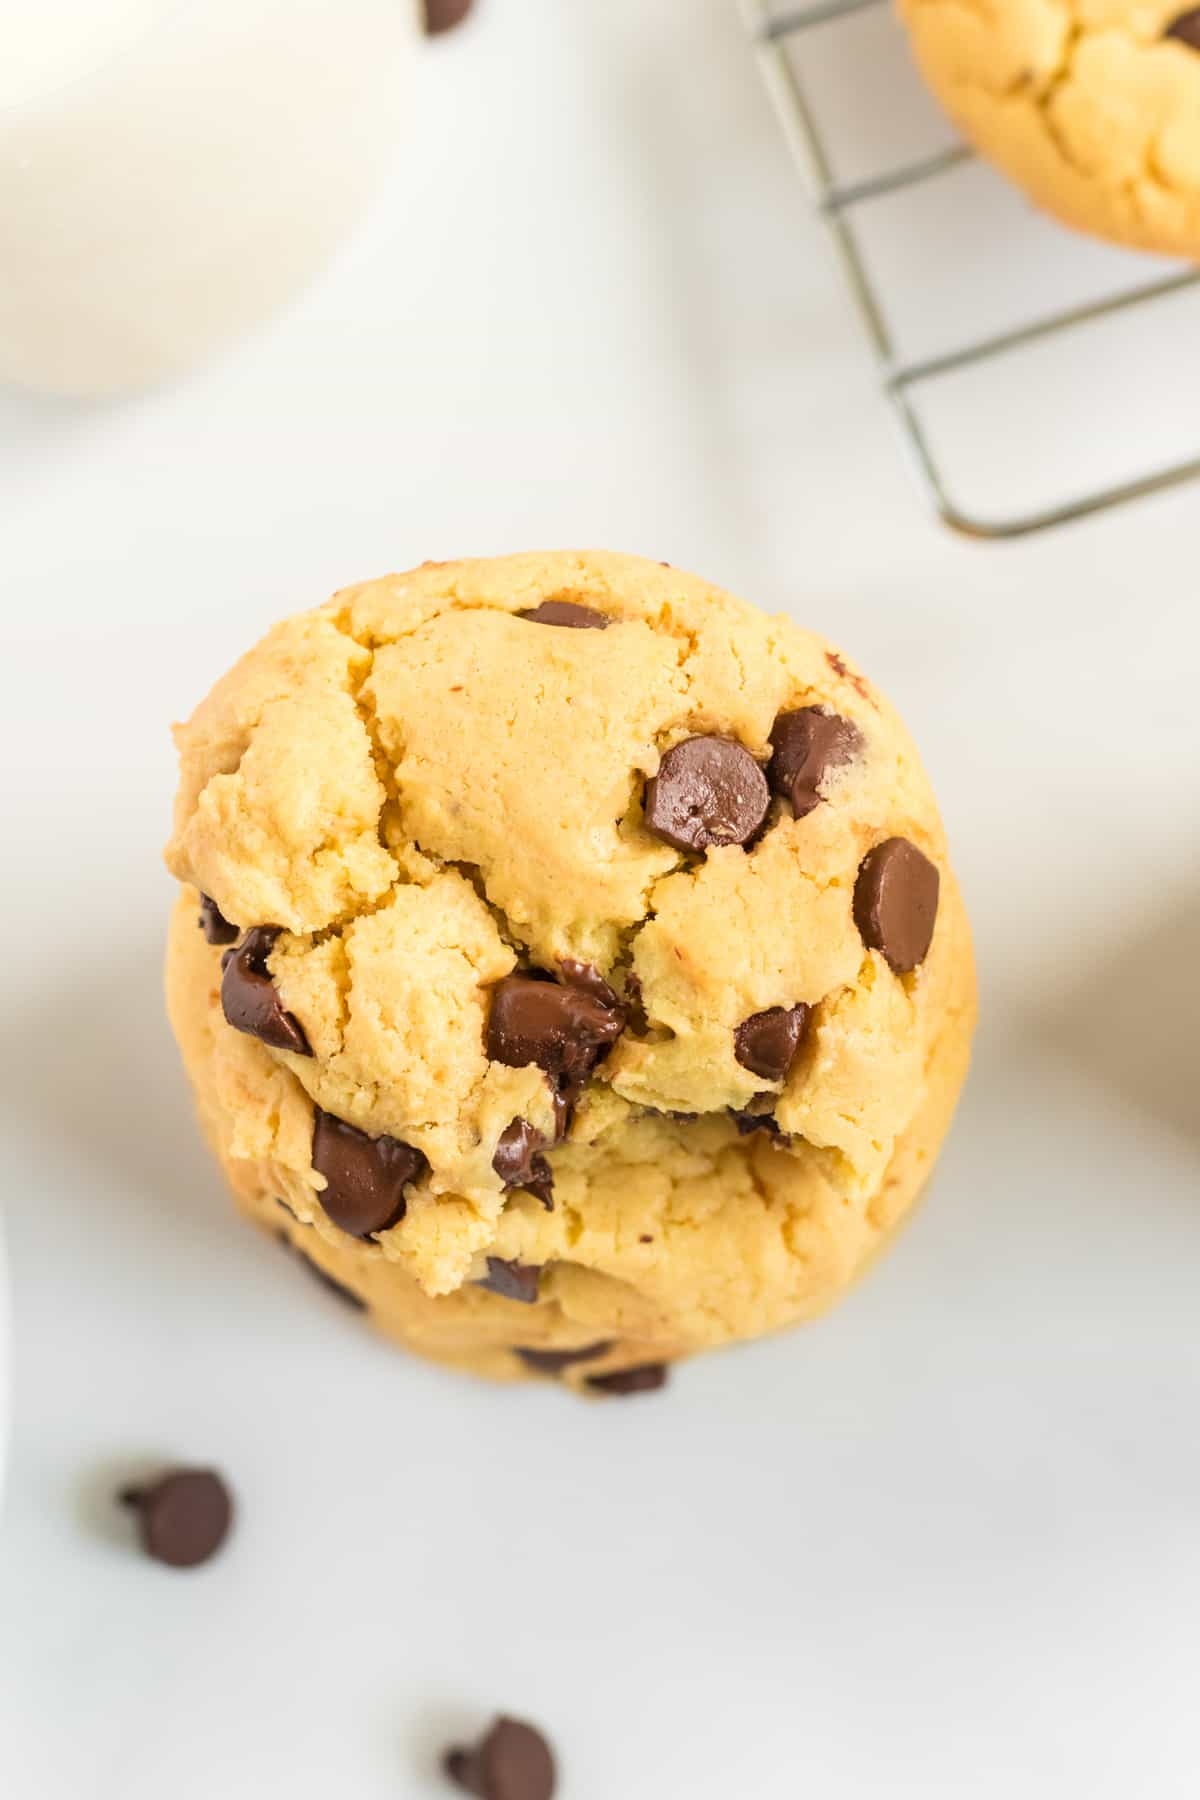 yellow cake mix cookies from an overhead view